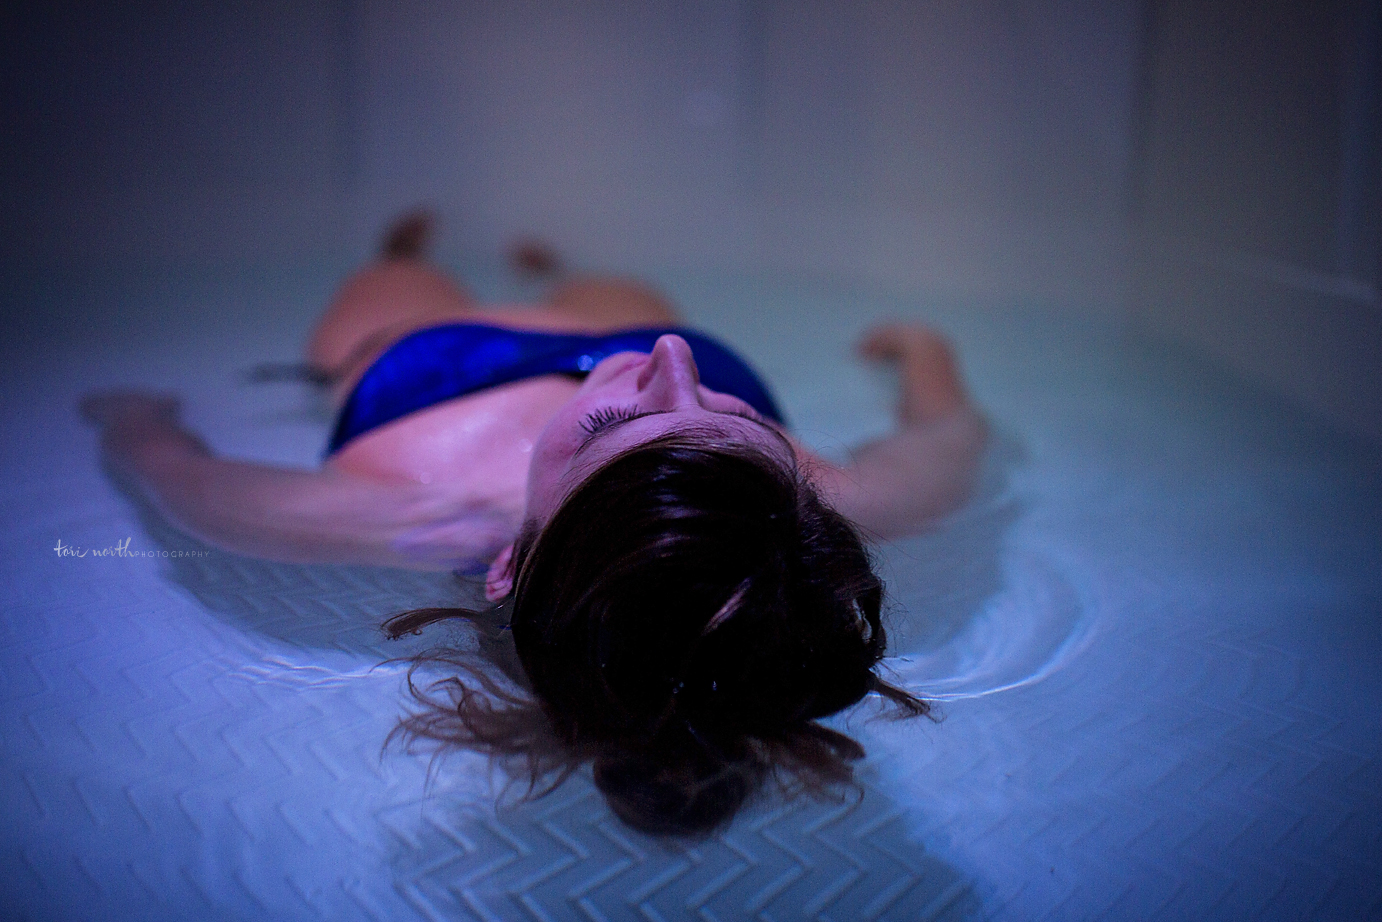 Sensory Reduction Float Therapy - $85 per session, 90 min. float$60 per session, 1hr. float$35 per session, 30 min. floatWe are the only Float Tank facility in Western Kansas. Our float tanks replicate the feeling of floating in the Dead Sea. You'll leave feeling refreshed and rested. This experience is a must for everyone. We recommend that you haven't had hair color treatments within 24 hours. We also recommend not to shave 24 hours prior to your treatment, and to cover open scratches with Vaseline. ABSOLUTELY NO self-tanning products.